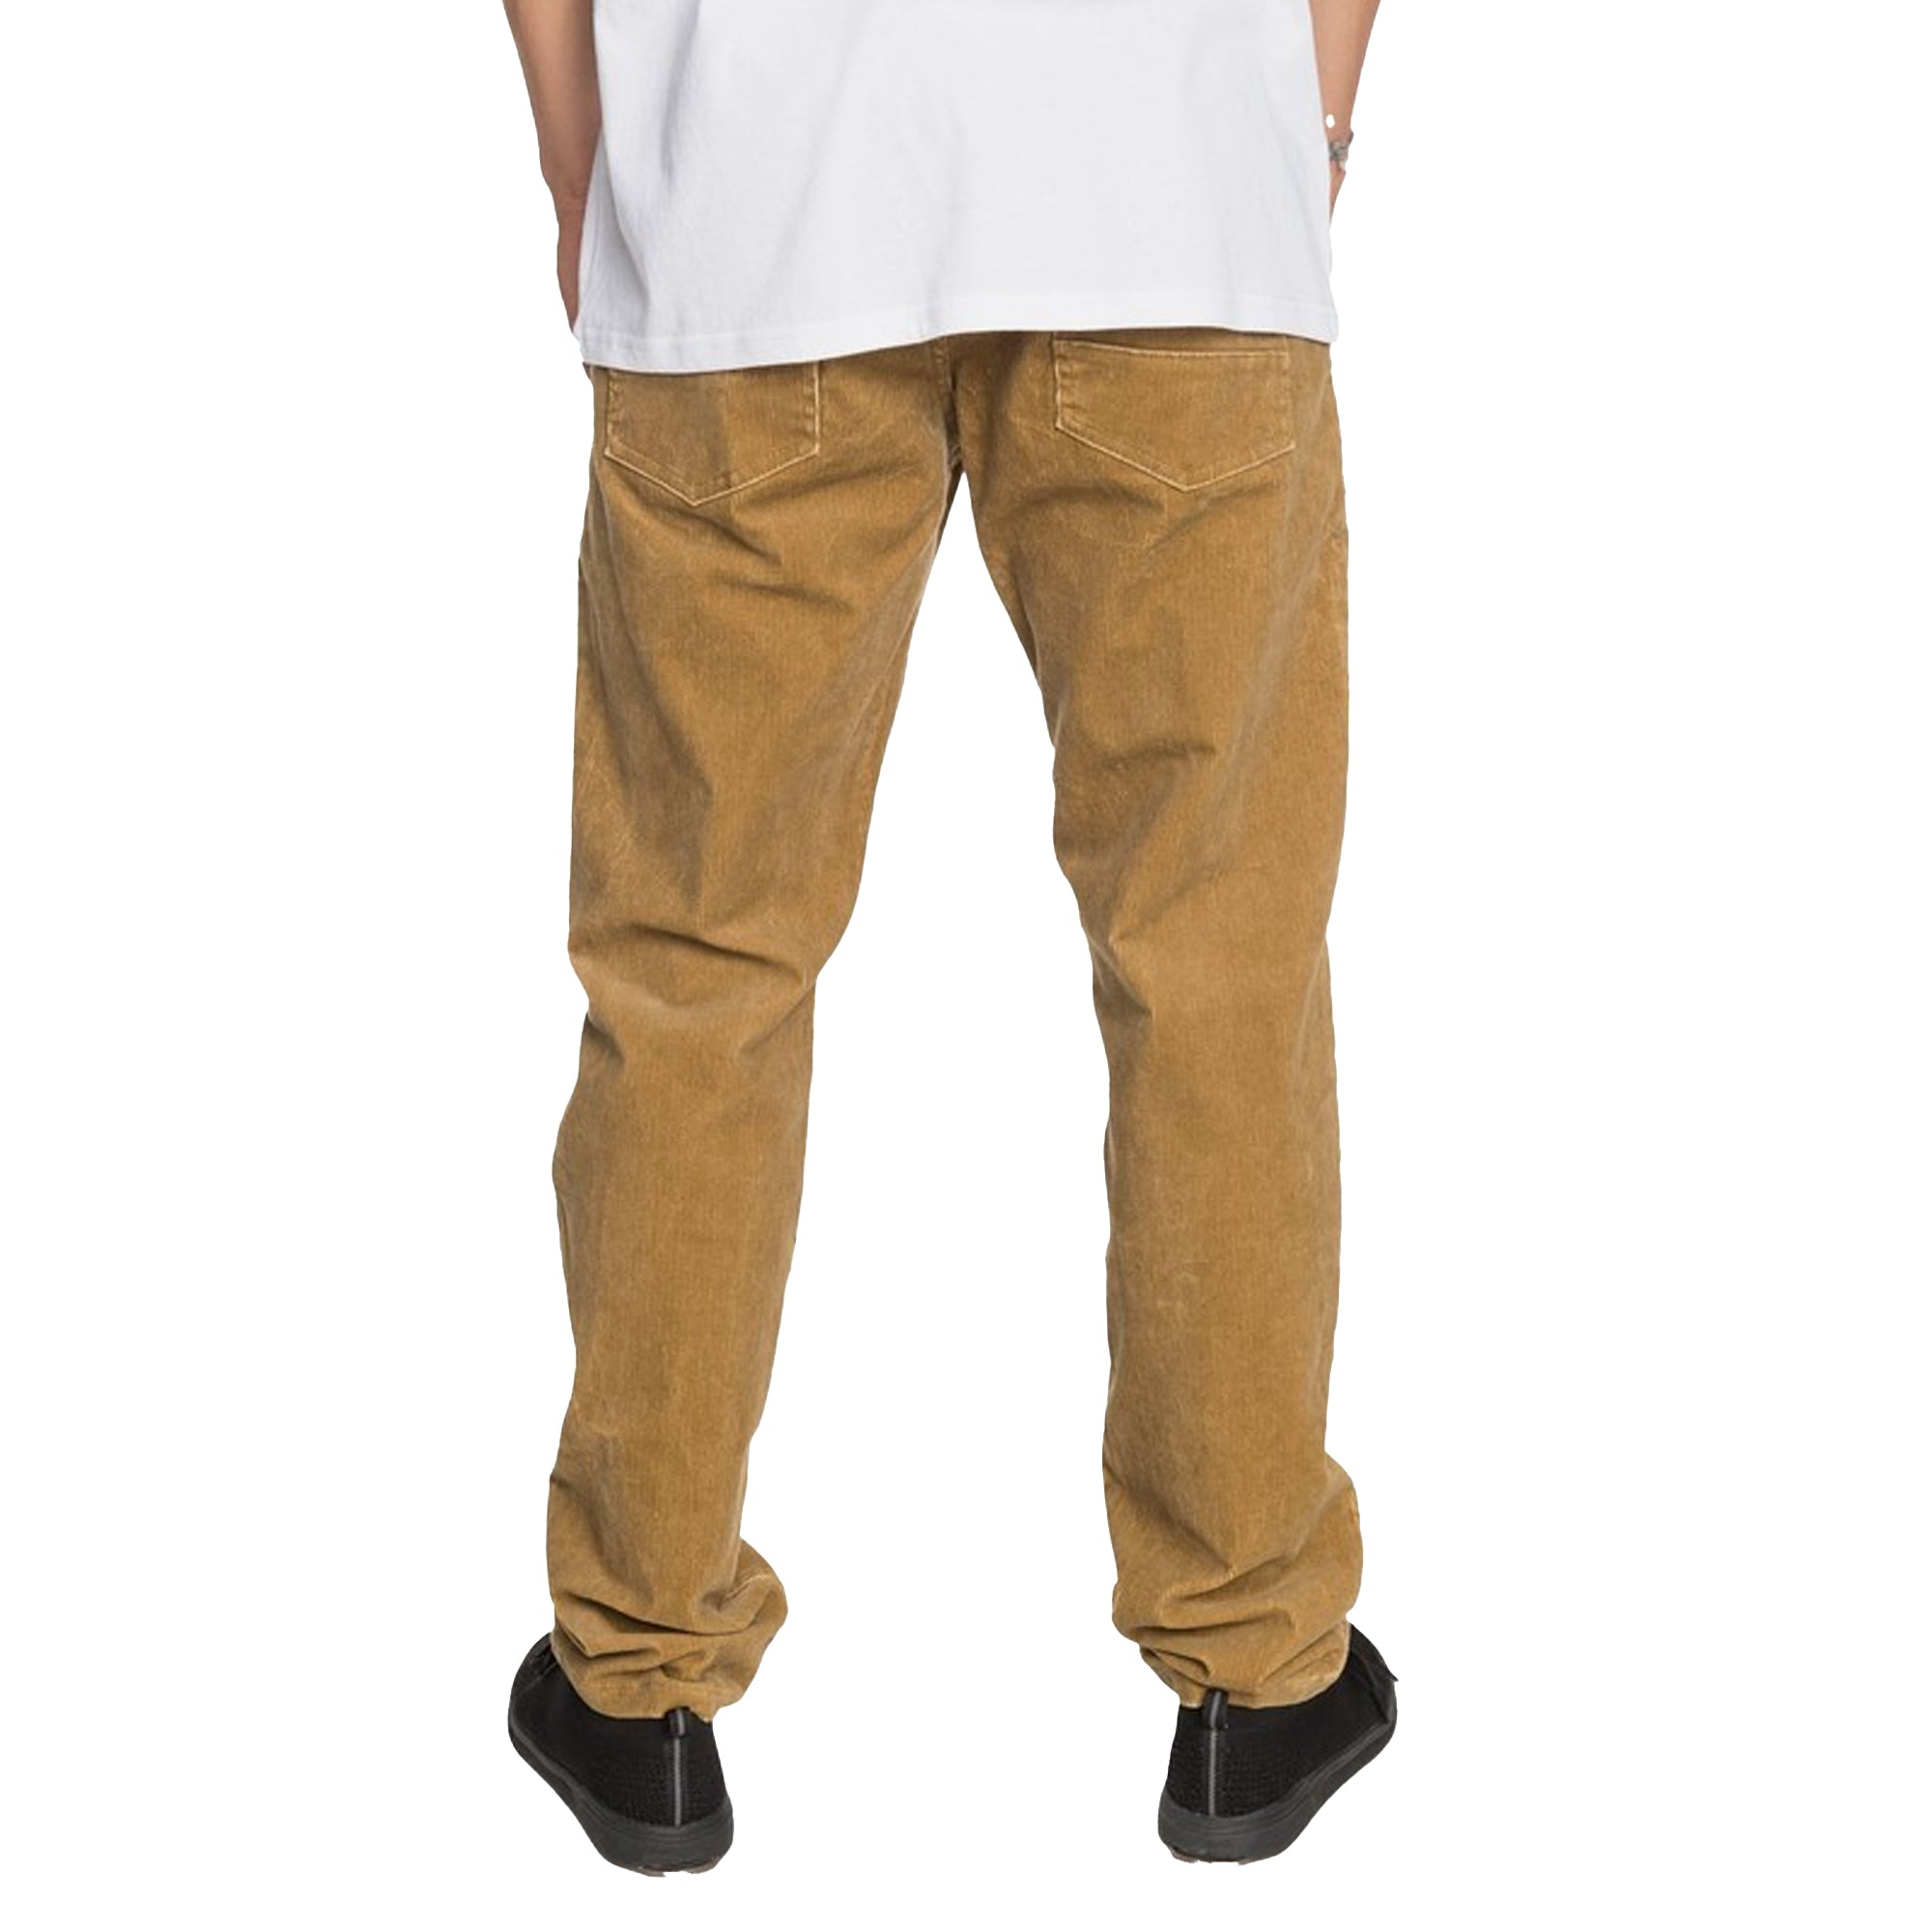 Quiksilver Kracker Straight Fit Corduroy Men's Pants